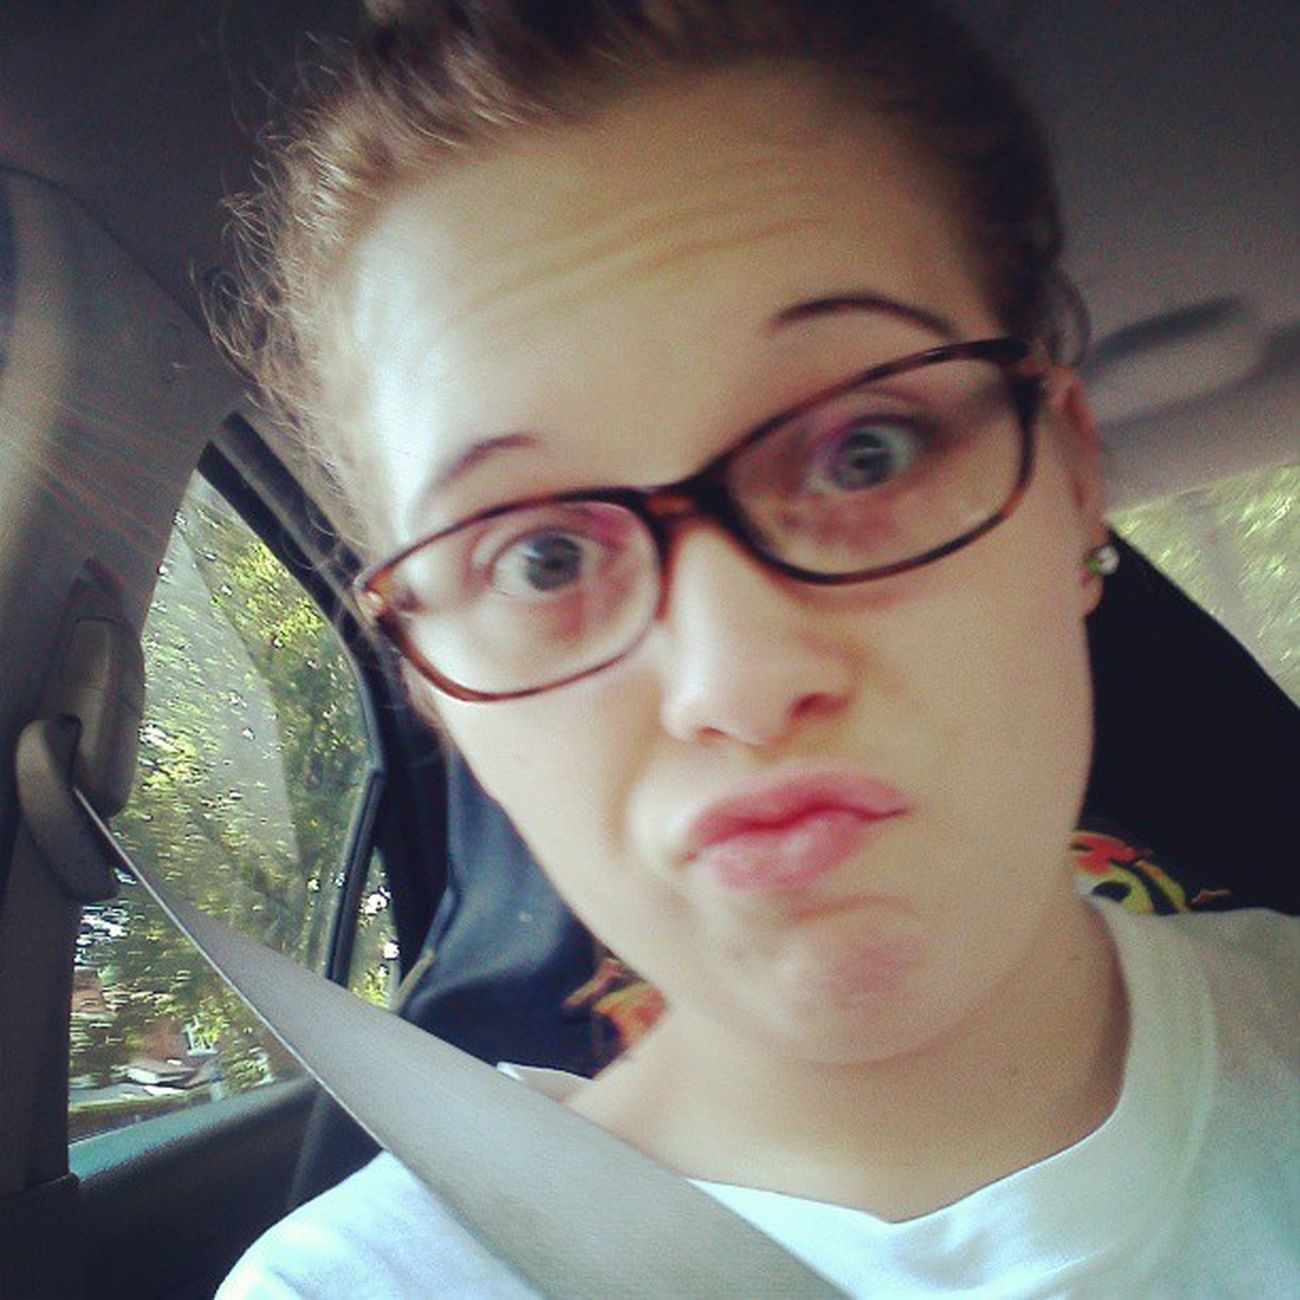 Finally decided to wear my glasses Likeag Glasses Seatbelt Car outside duckface ducklips whitepeople safety whitetee messybun summer ridin 2013 happy doubletap tap for likes cute beautiful